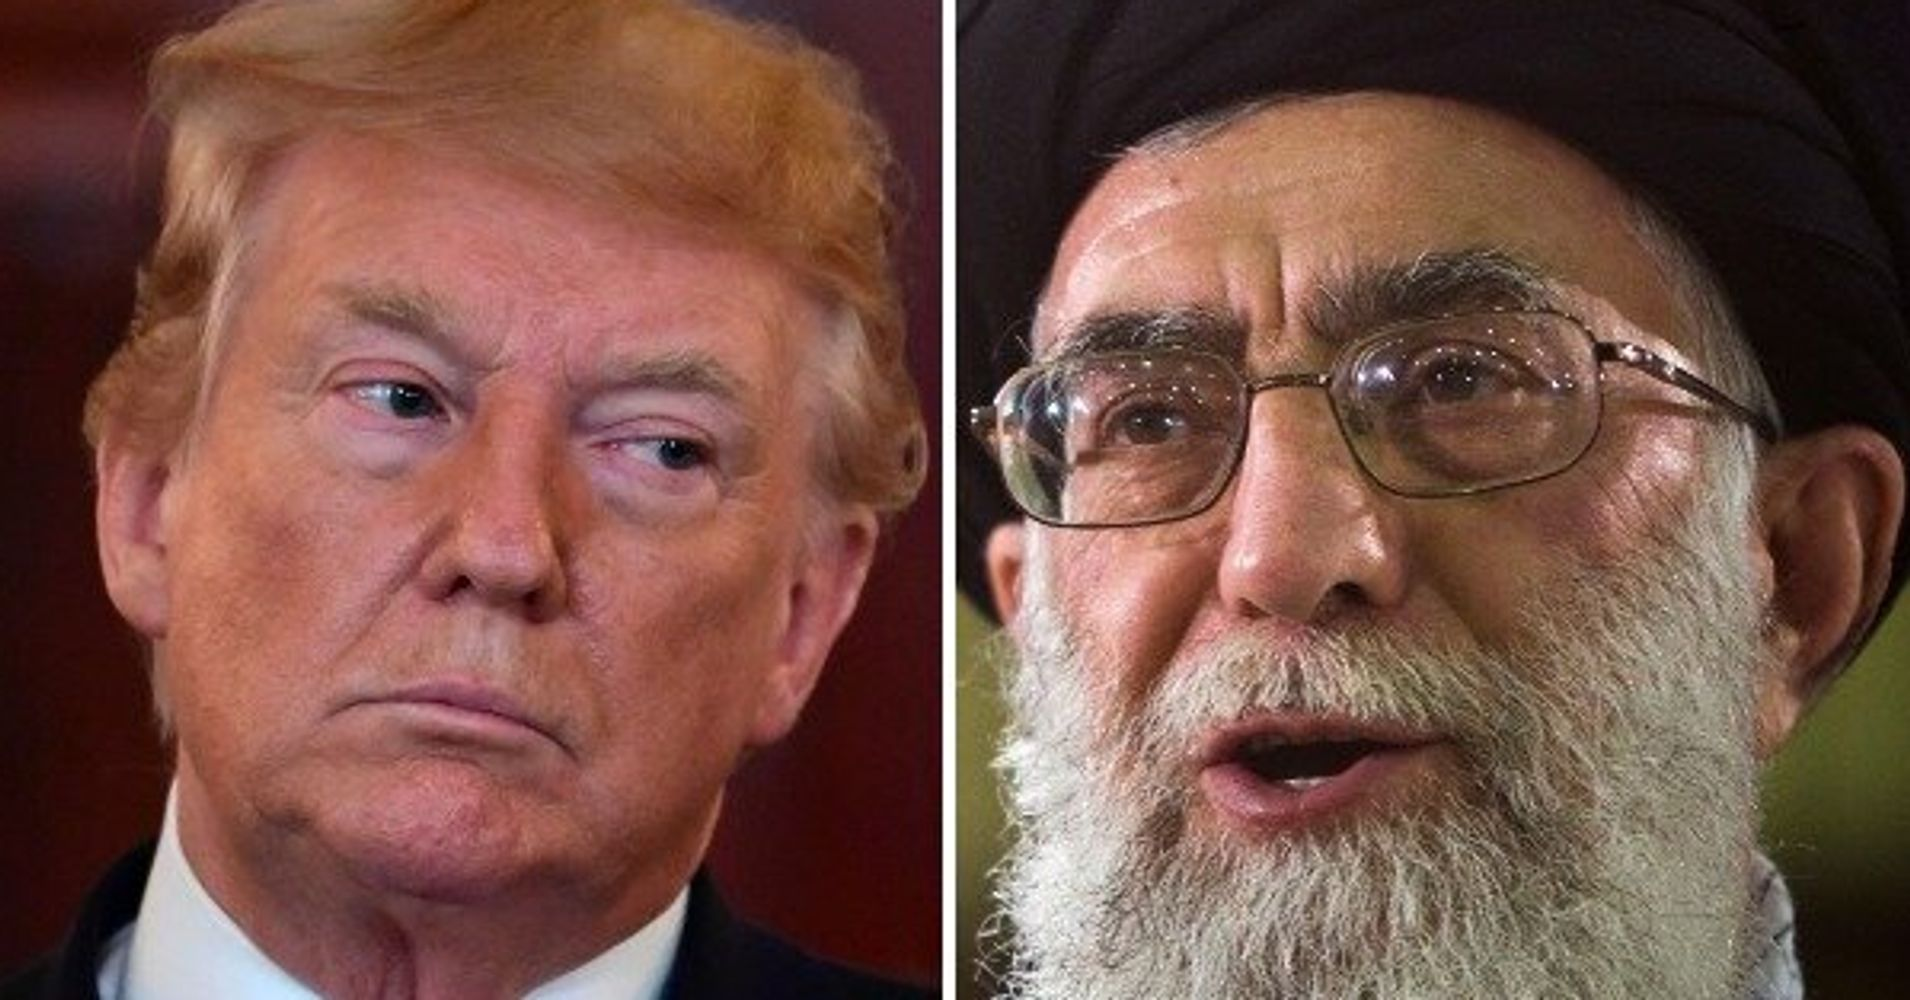 New U.S. Sanctions Mean 'Permanent Closure' Of Diplomacy, Iran Says thumbnail